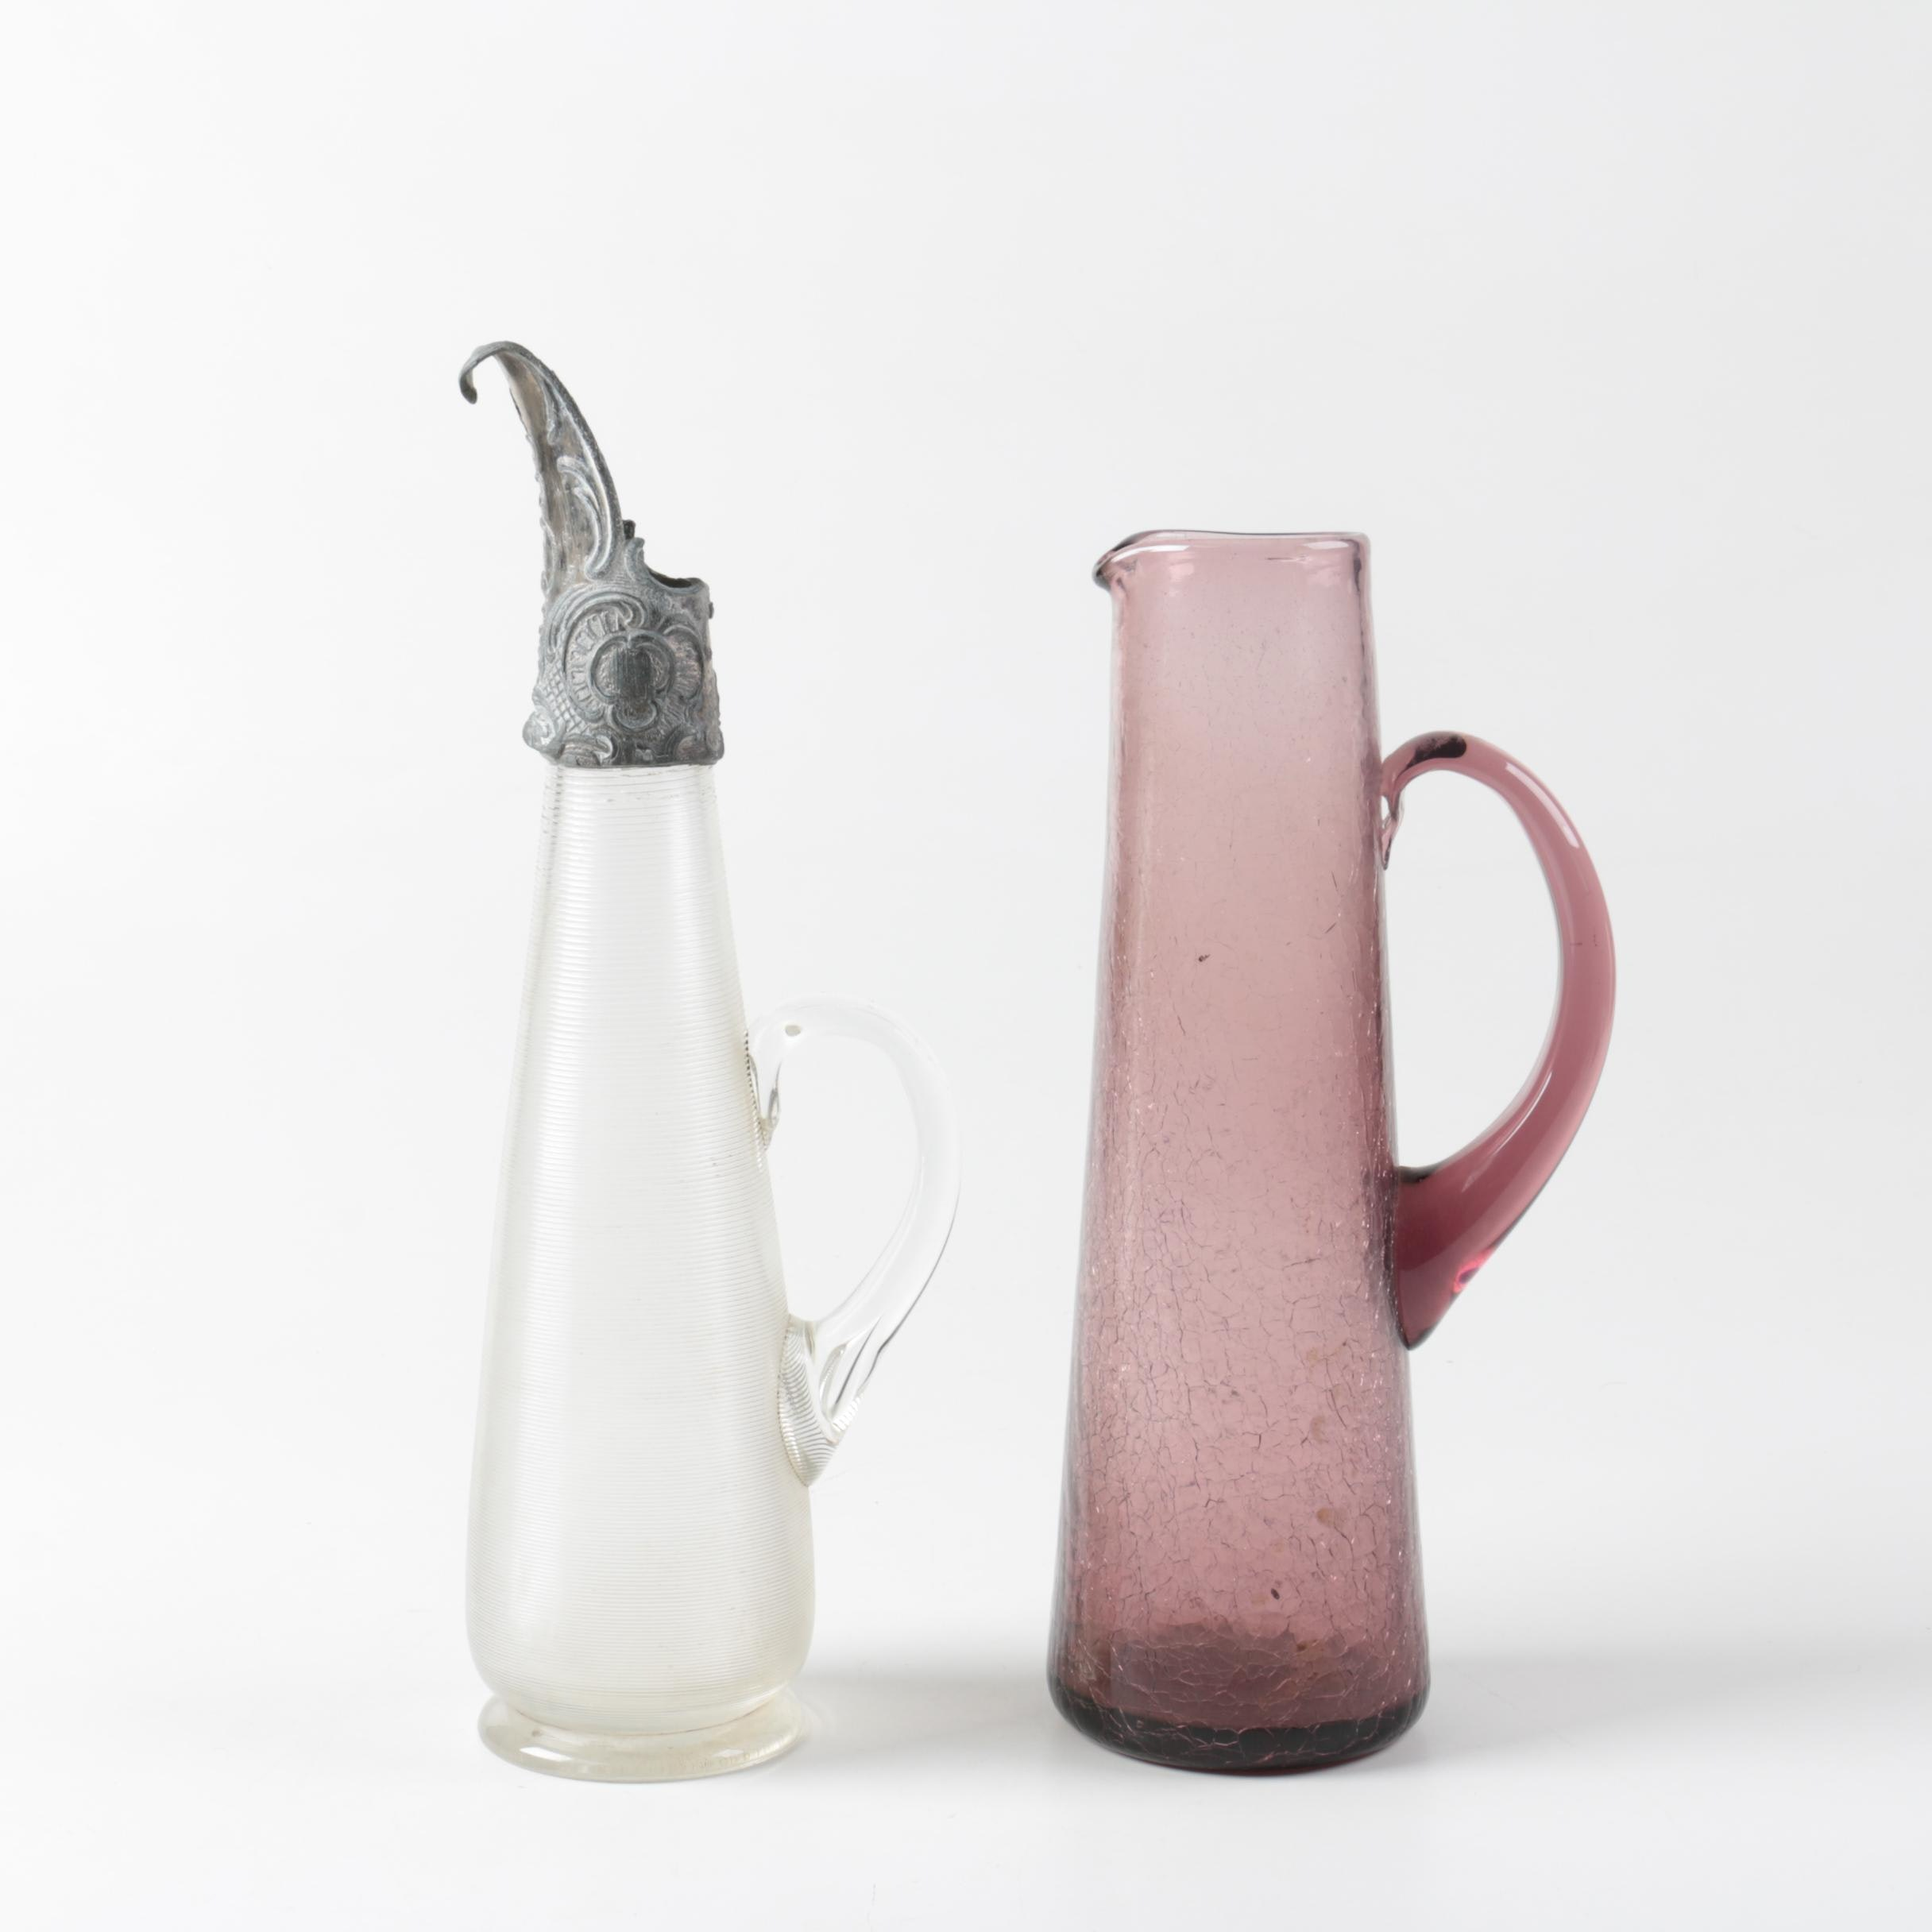 Glass Pitchers featuring Silver Tone Lid